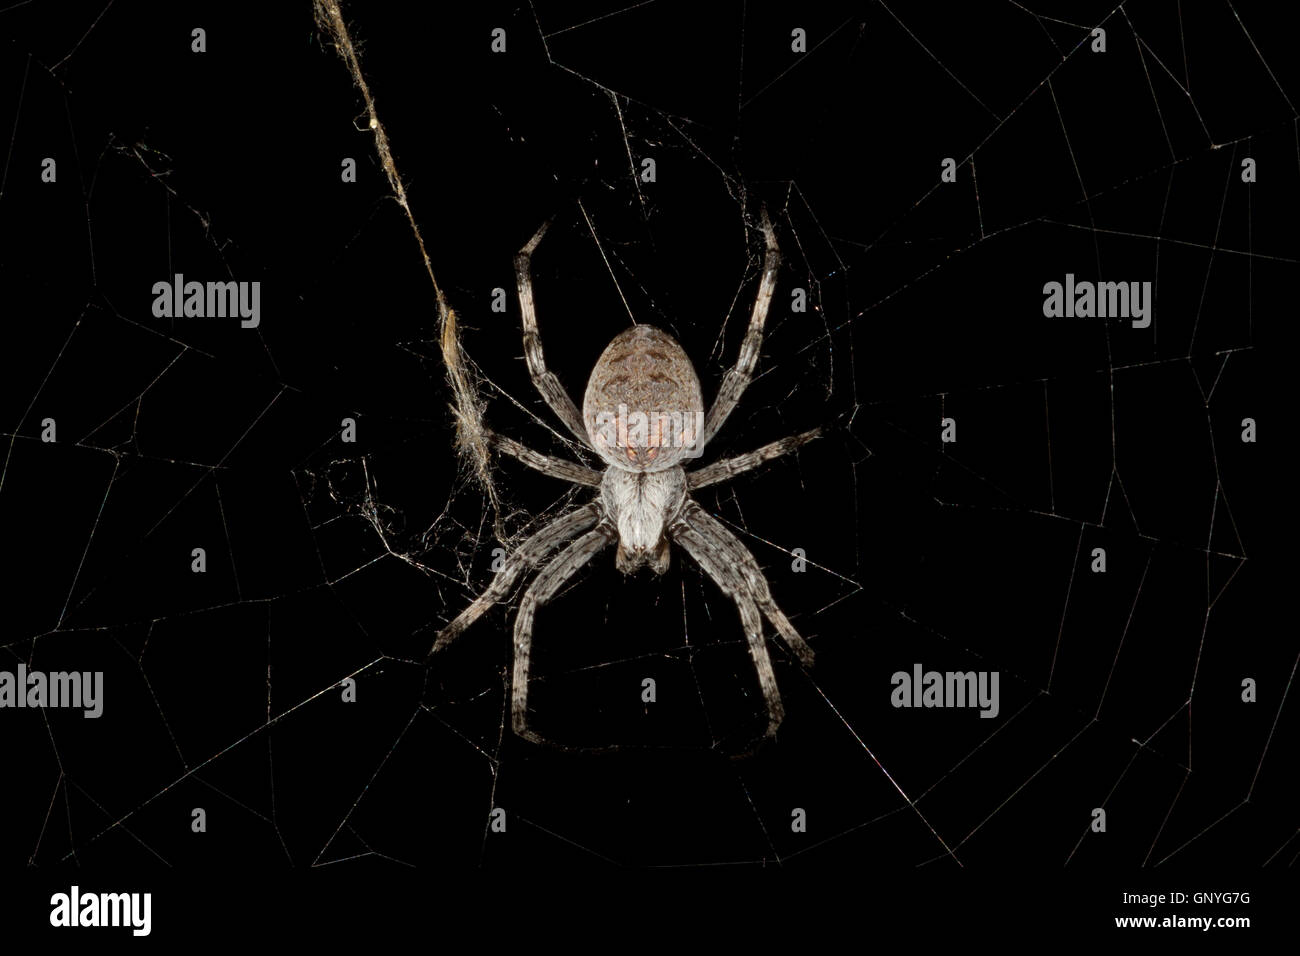 Orb web spider on web at night. California. USA - Stock Image